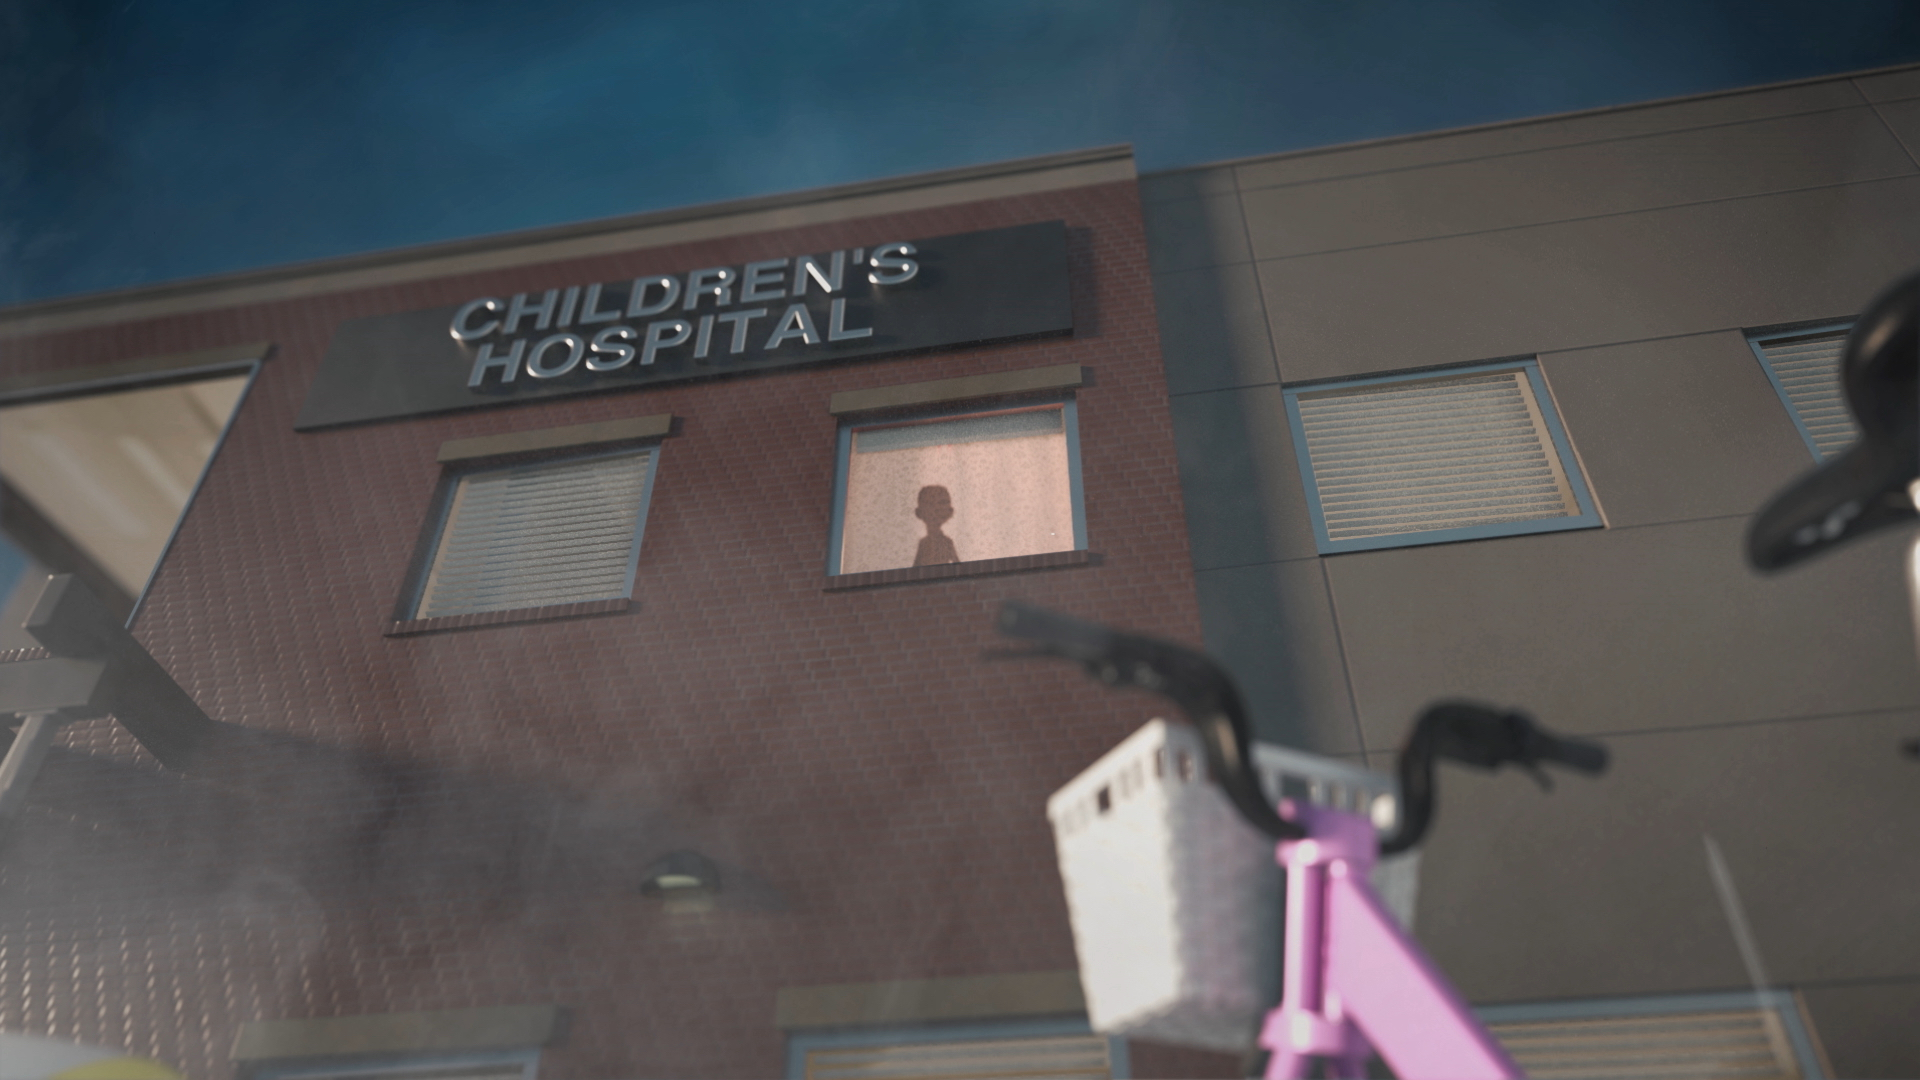 Children's Hospital 8.jpeg